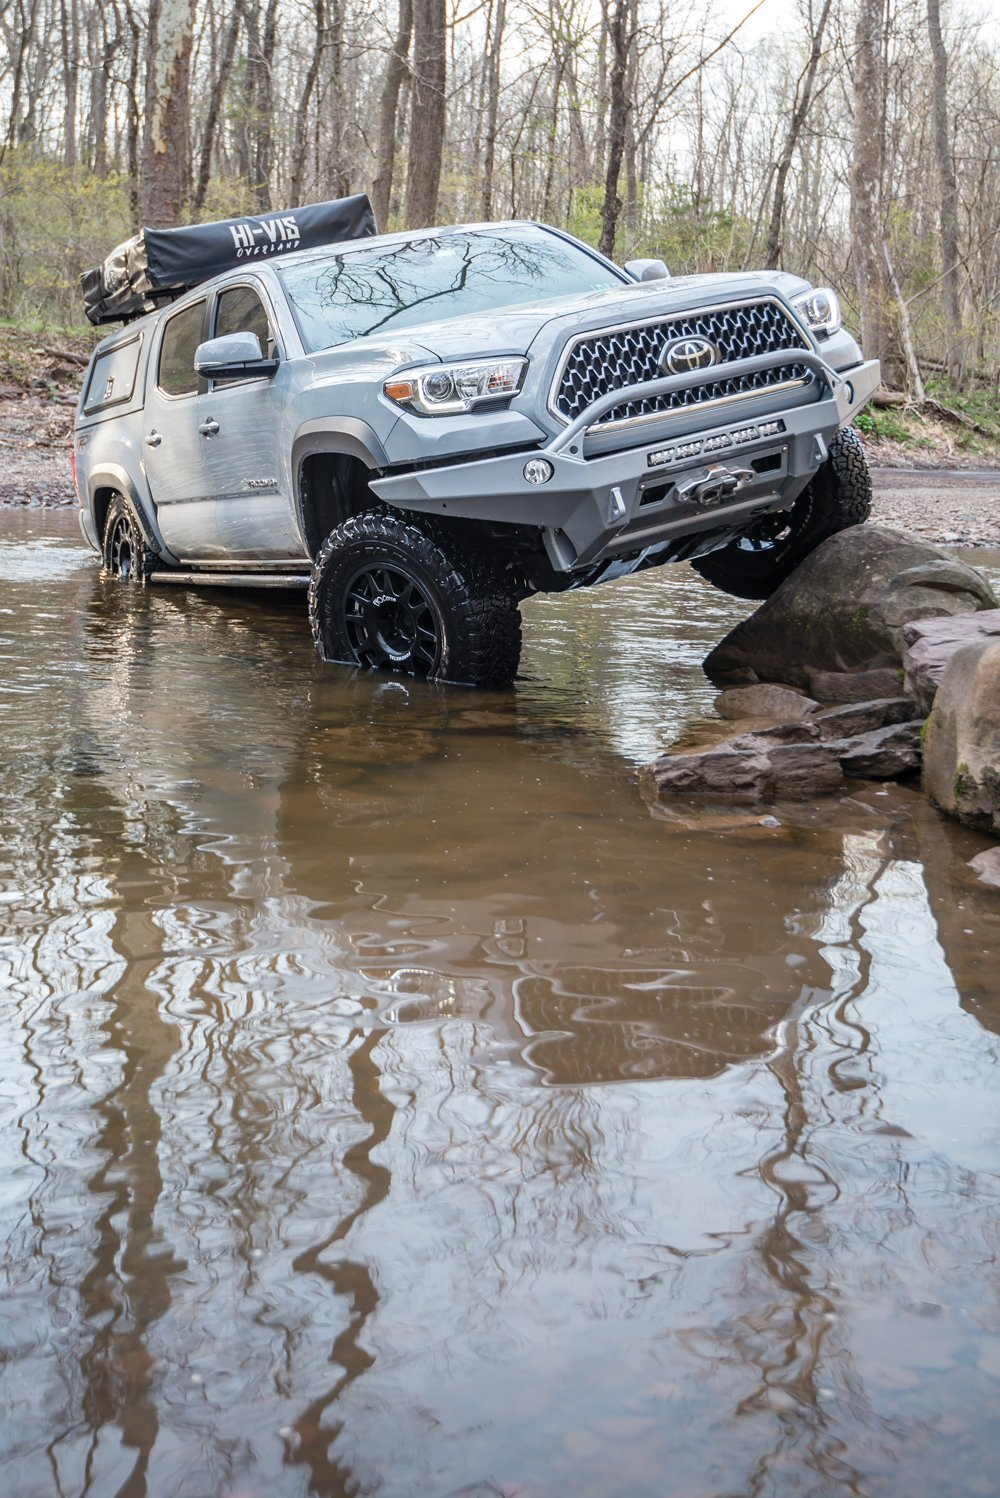 This Toyota enjoys water and rock climbing